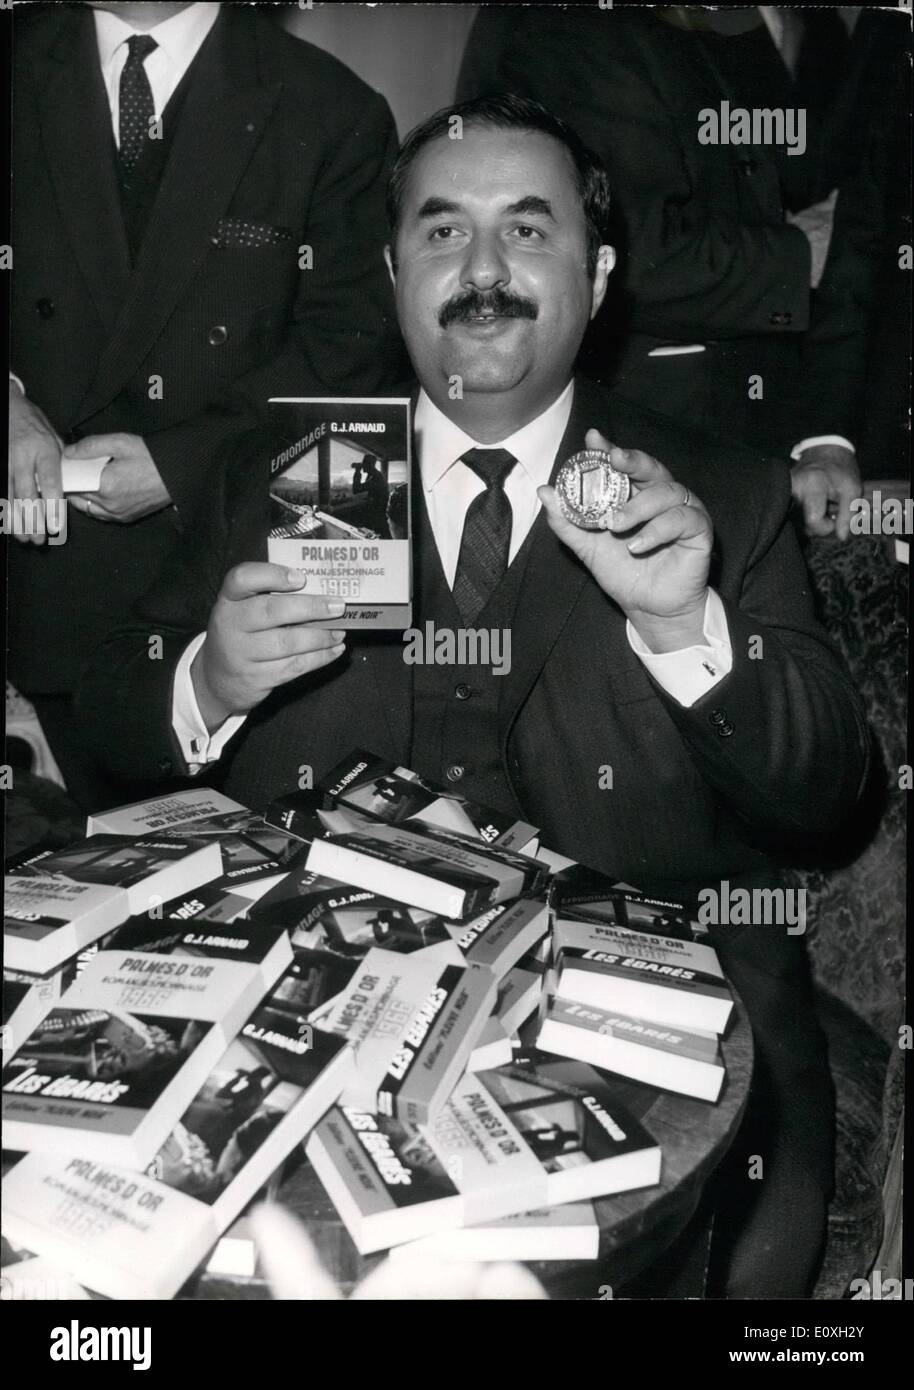 Oct. 10, 1966 - Best spy Novel of the year: The Annual award of the ''Palmes D'Or'' (Golden Palm) for the best spy novel of the - Stock Image